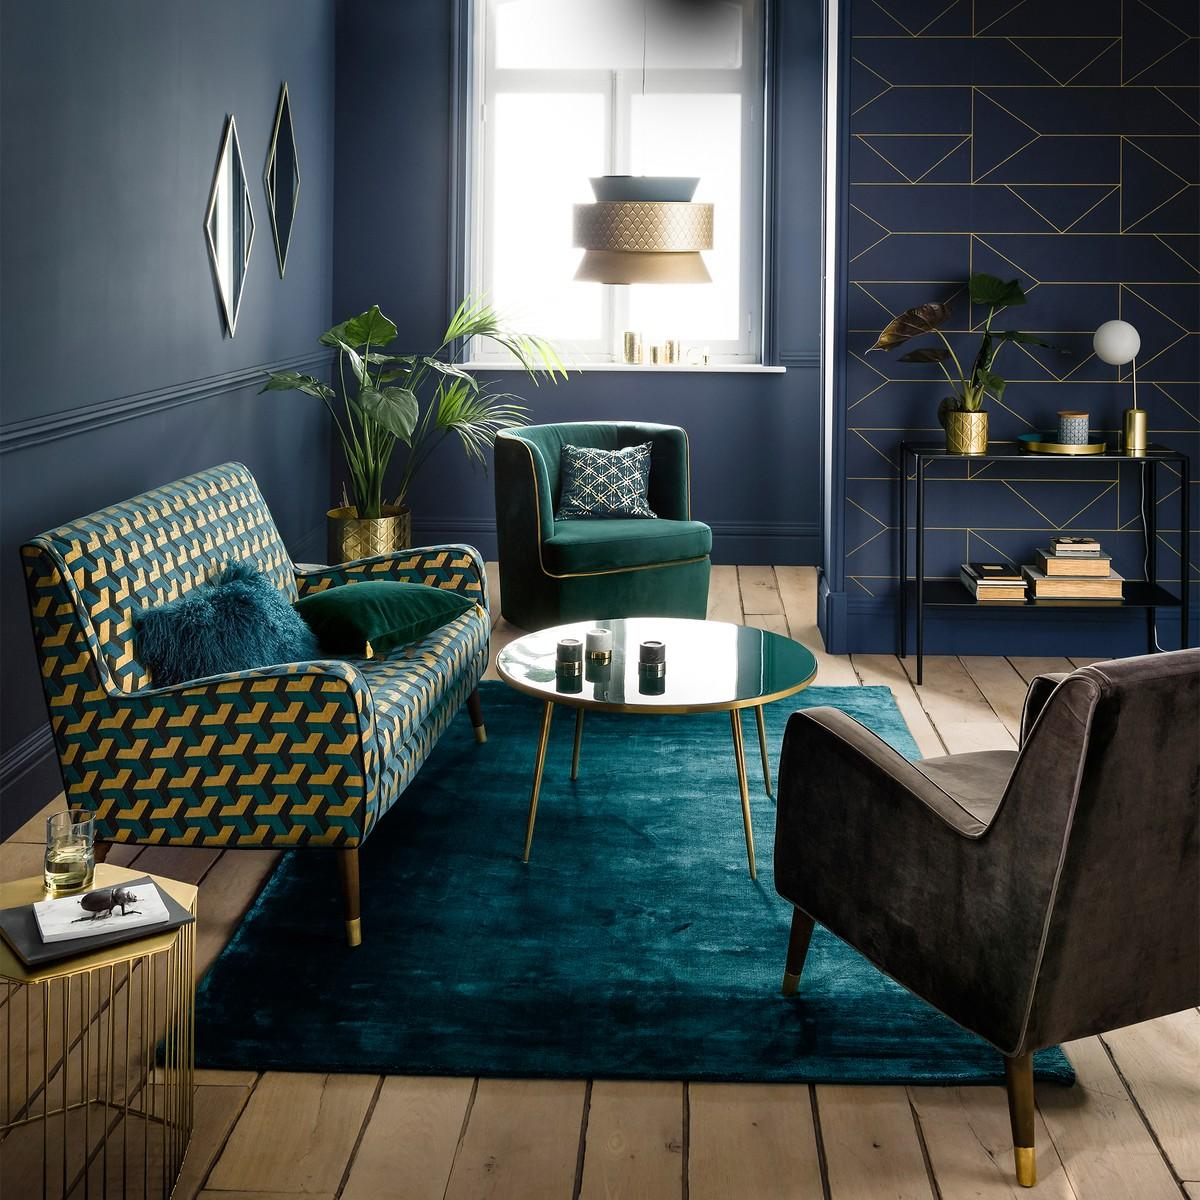 Green, Navy and gold living room inspiration| Today we're talking inspiration for adding green to your living room. Green is a really versatile colour to decorate your home with. But, which colours and tones work well? What kind of accessories work with green? This post gives you ideas for pulling together an elegant green colour palette and pieces for your home. Read more: kittyandb.com #greenlivingroom #interiordecoratinginspiration #colorpalette #colourpalette #greenaesthetic #navyandgreen